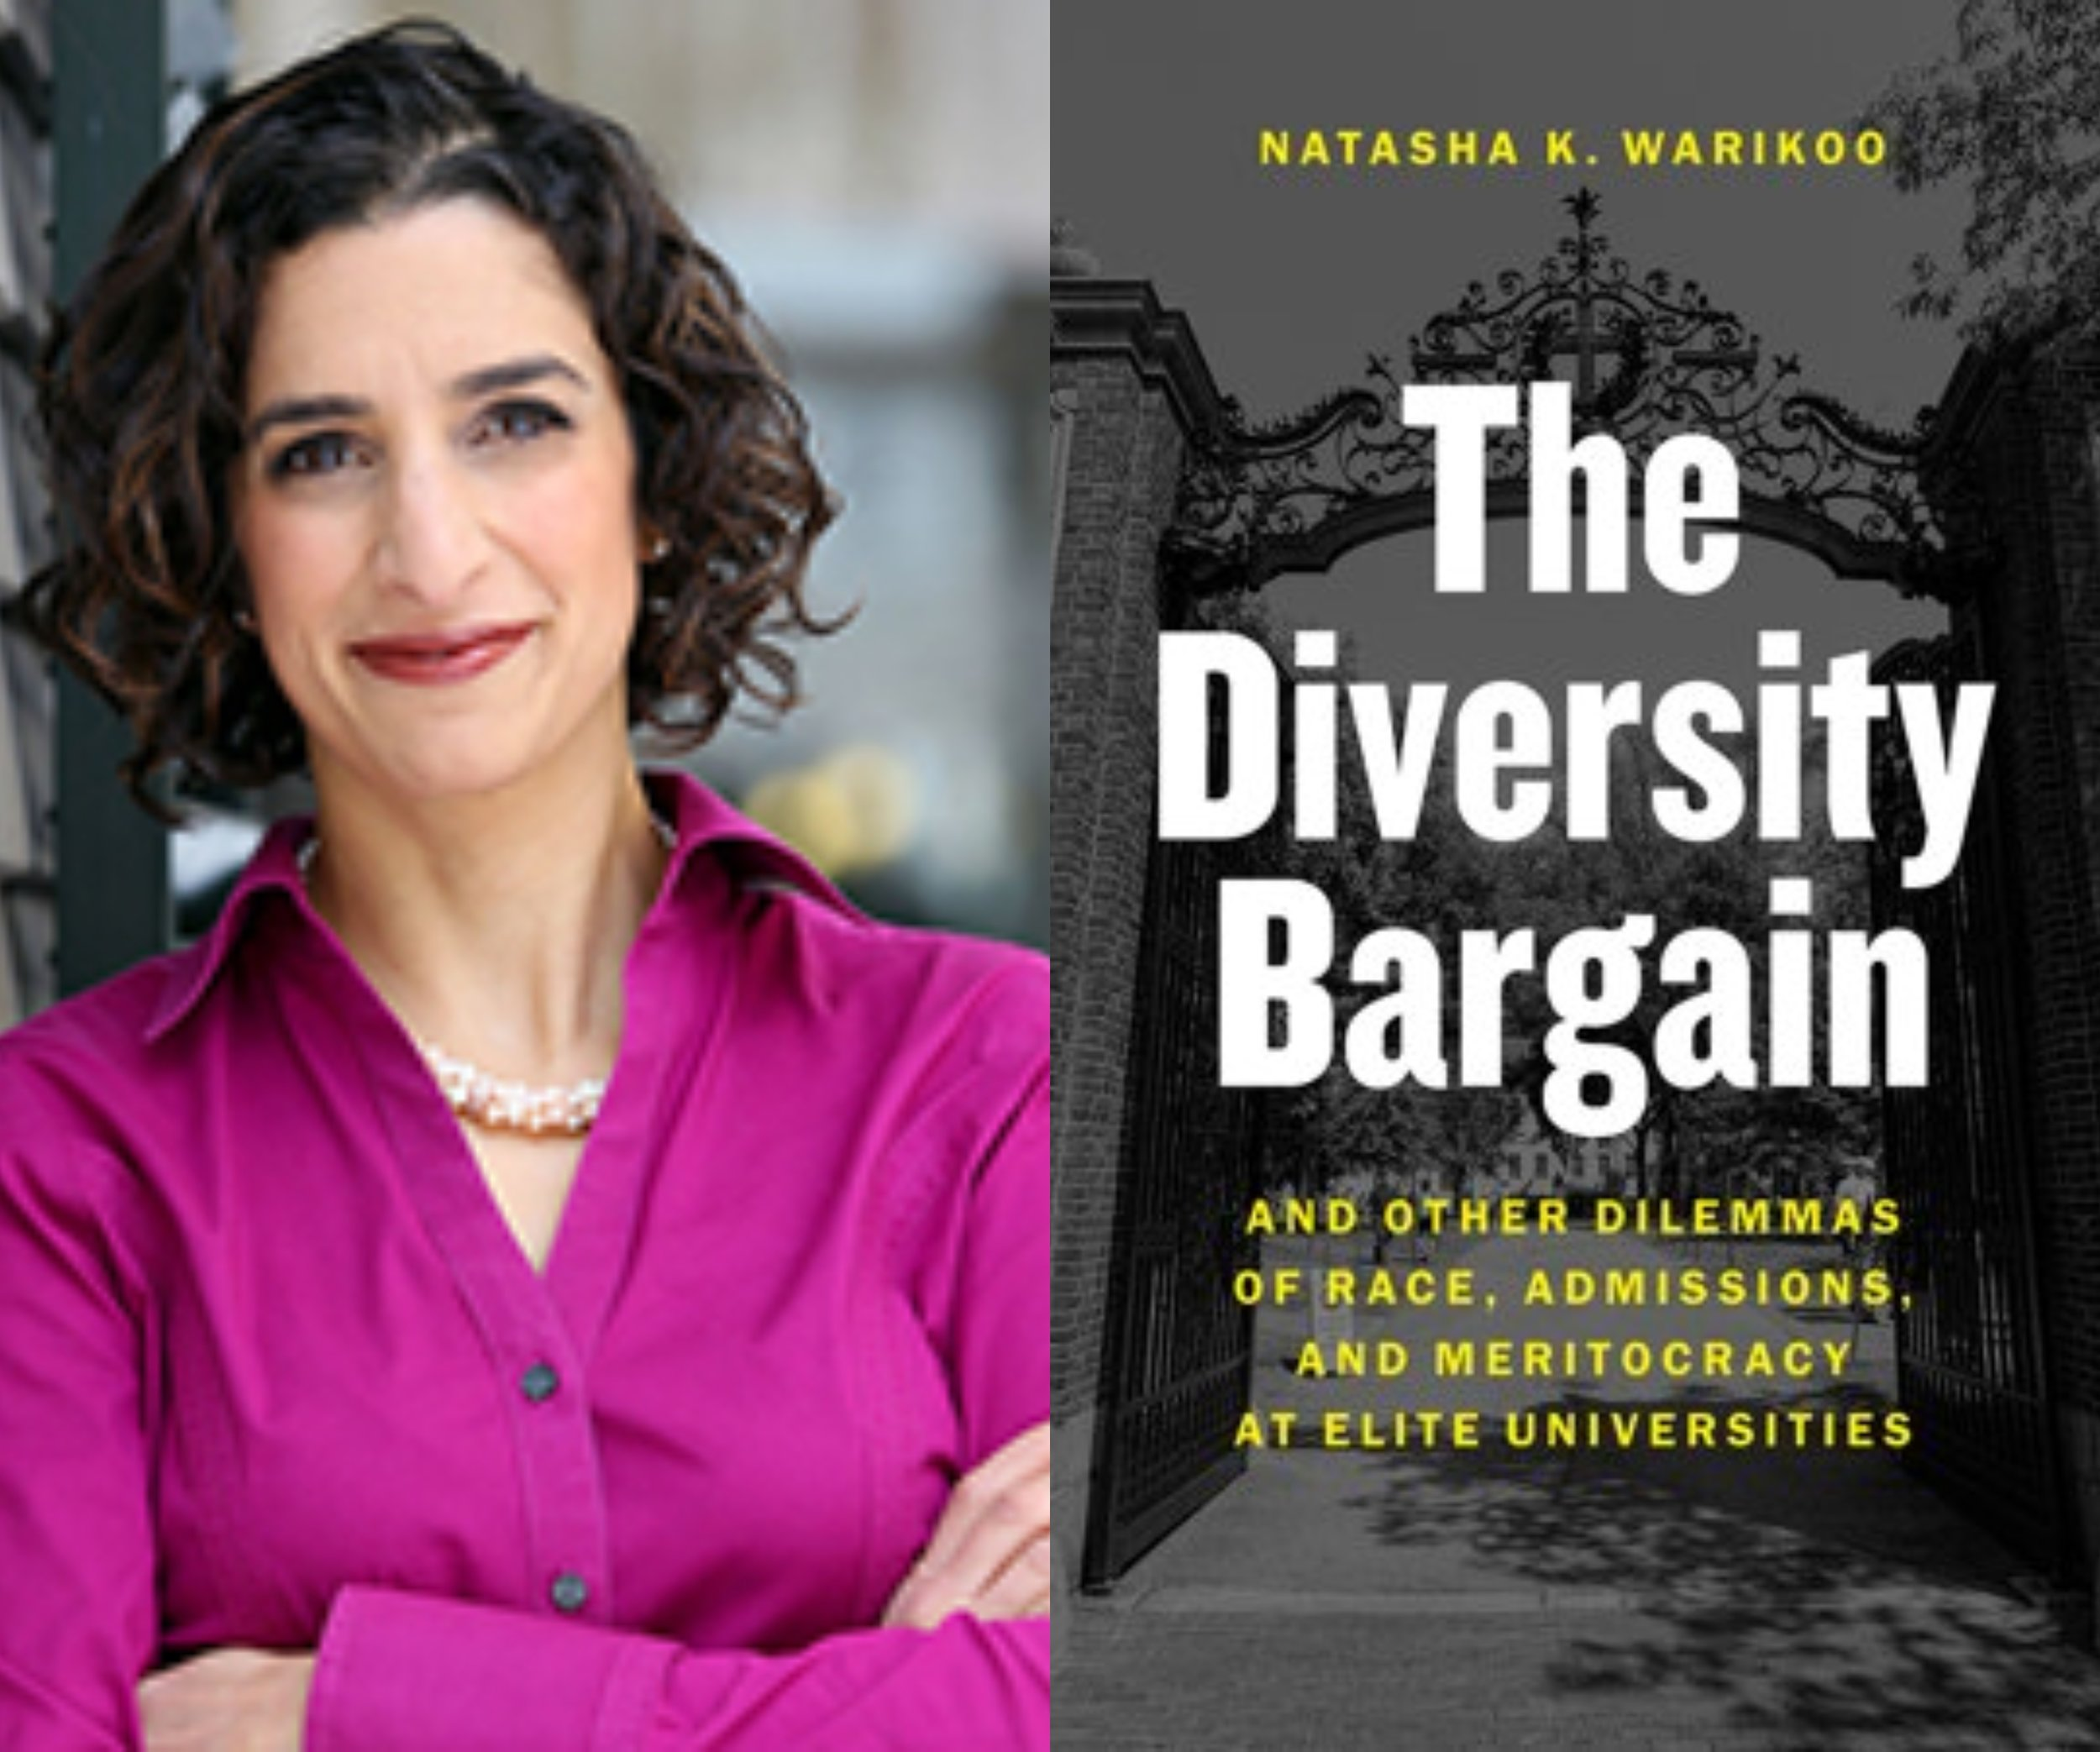 FREE SPEECH 43: Color Blindness, or Diversity? How to Think About Affirmative Action, with Natasha Warikoo -